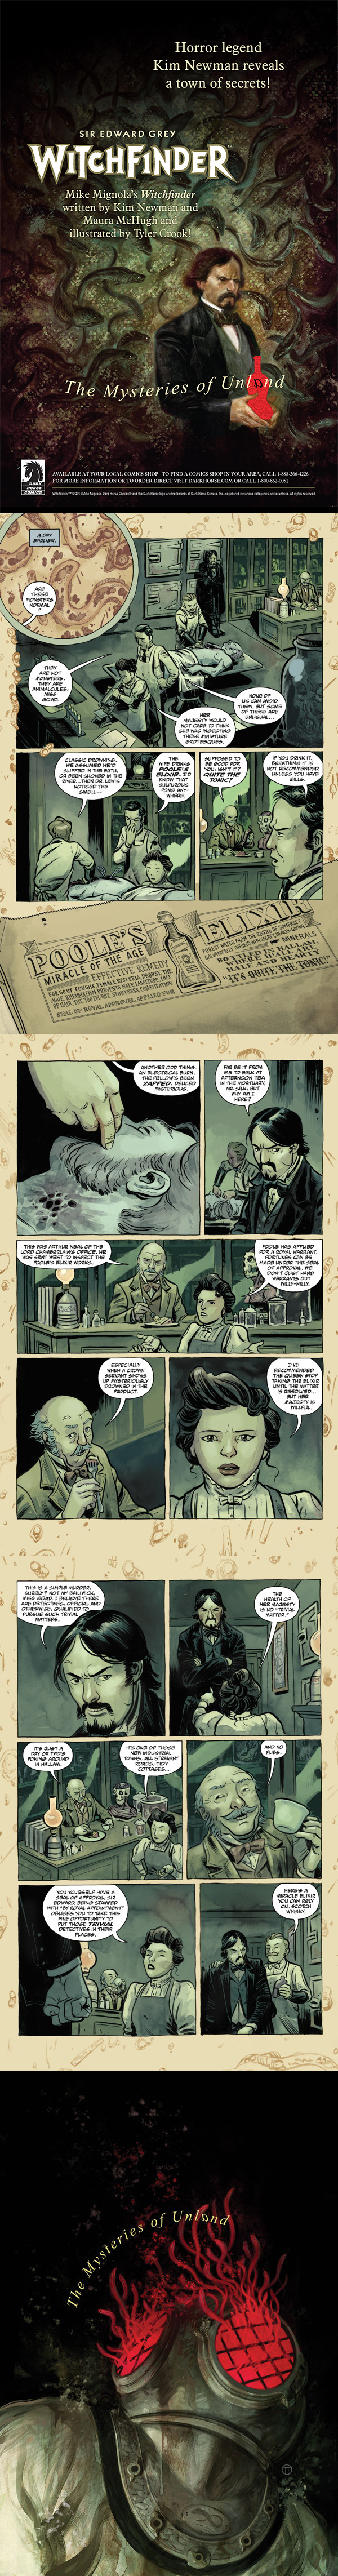 WITCHFINDER #1 THE MYSTERIES OF UNLAND